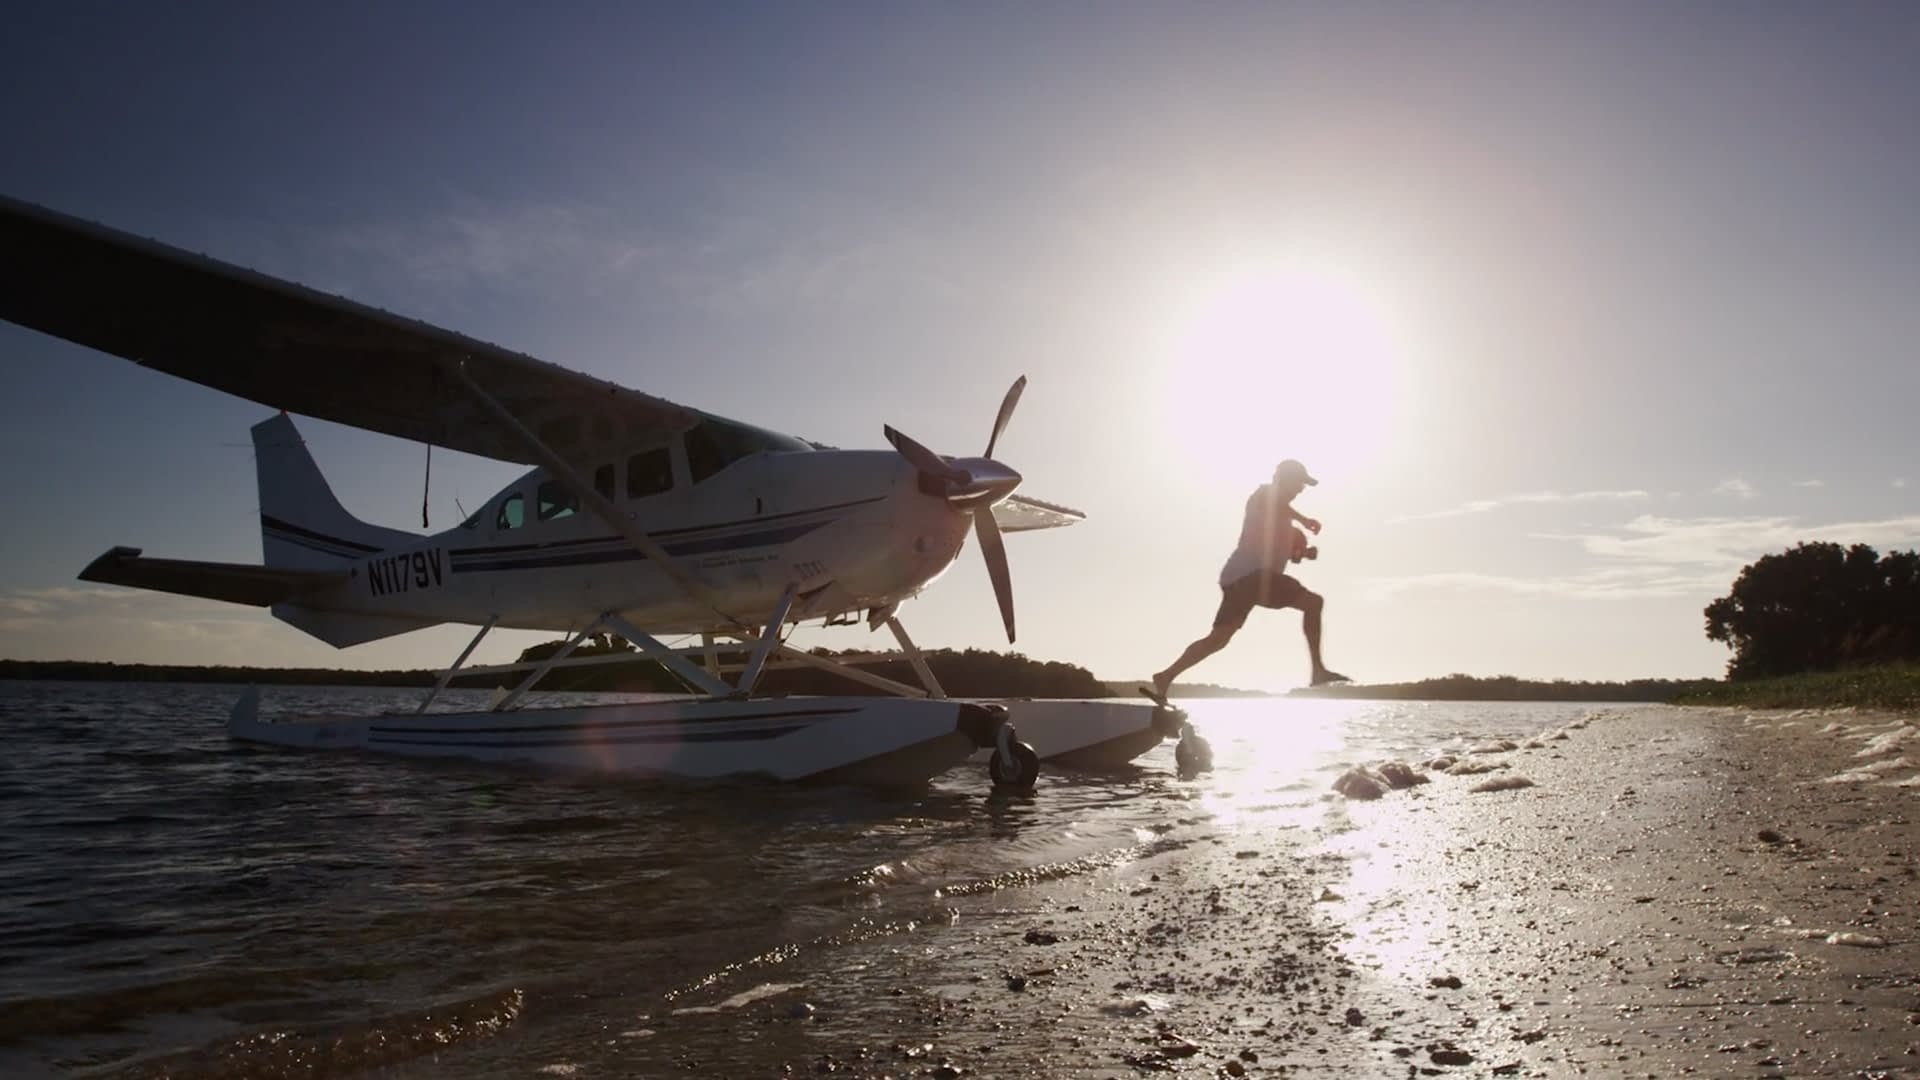 A man jumping onto the beach from a parked seaplane.